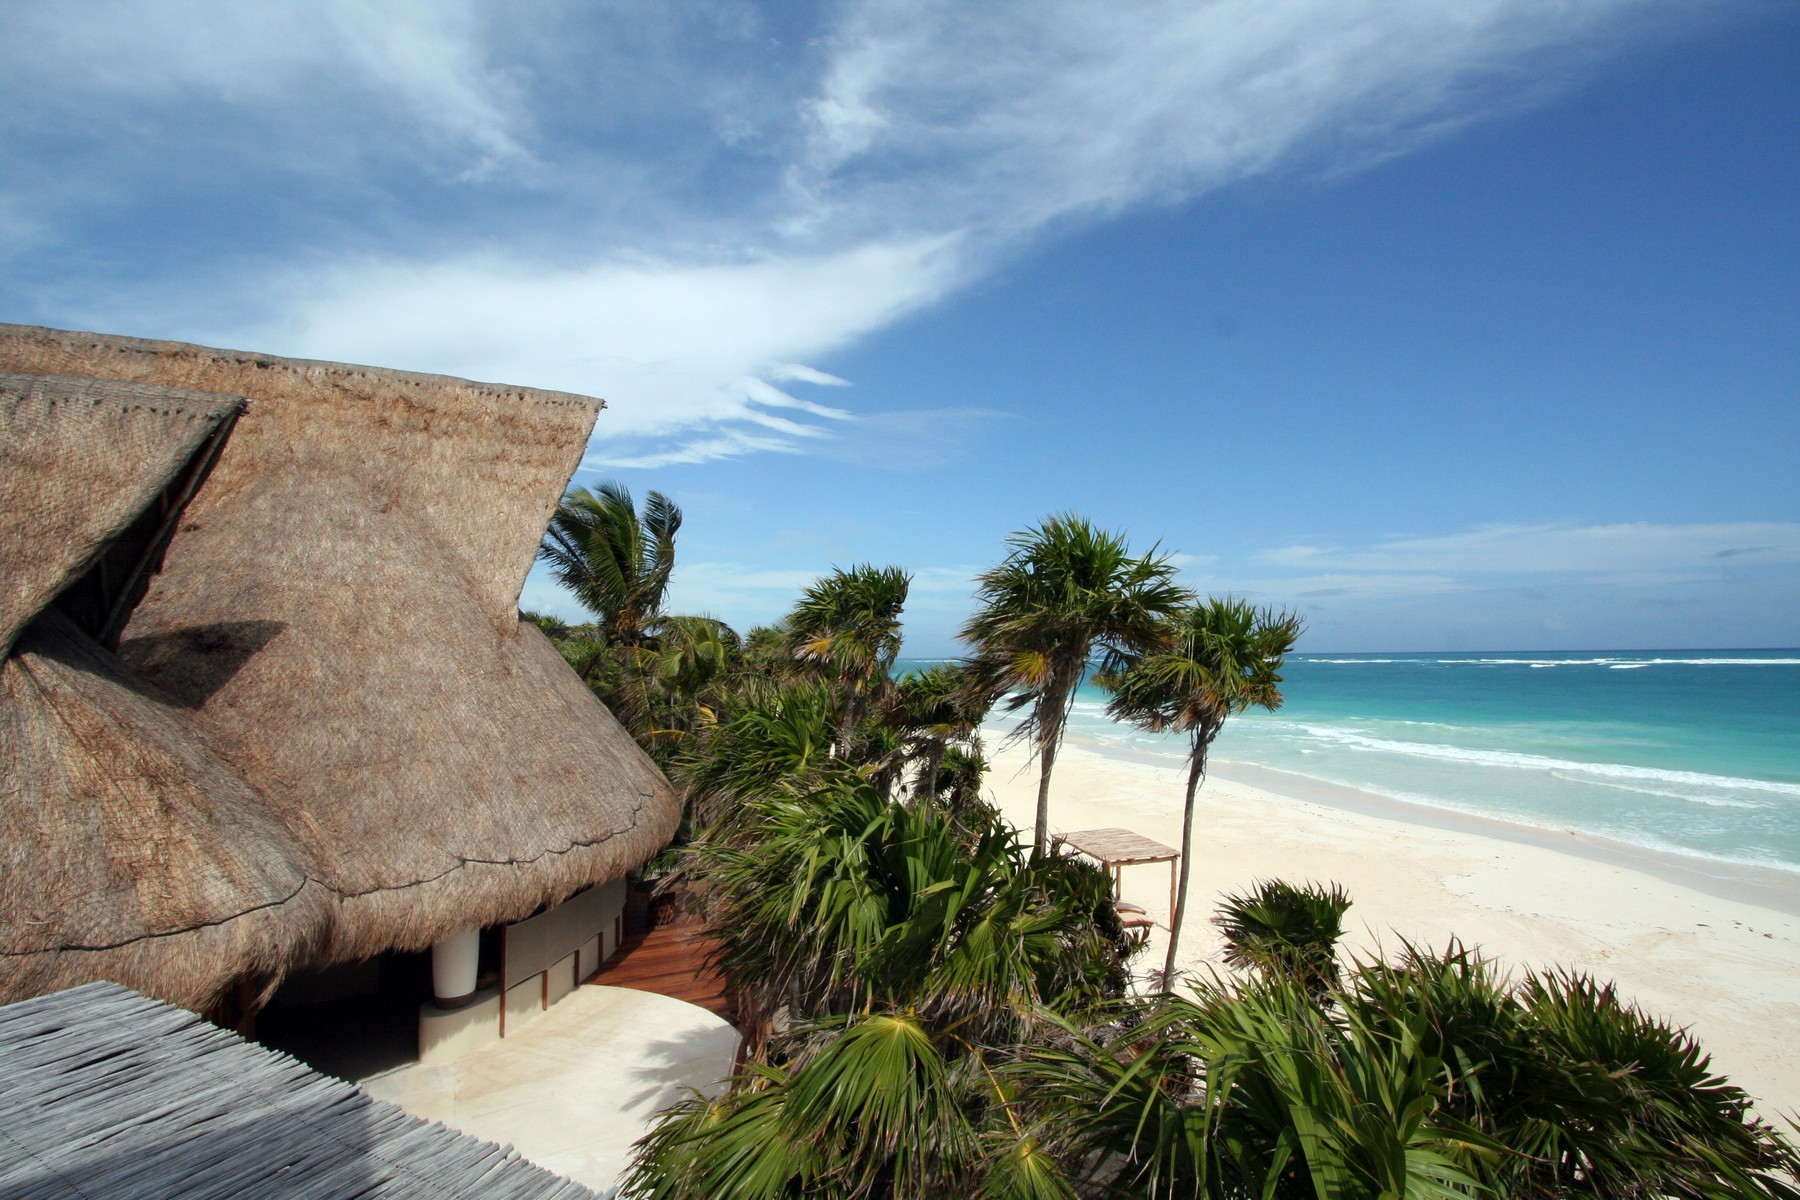 Single Family Home for Sale at CASA SIANKAANA Camino Tulum-Boca Paila Lote Fracc. 1 Tulum, Quintana Roo 77780 Mexico